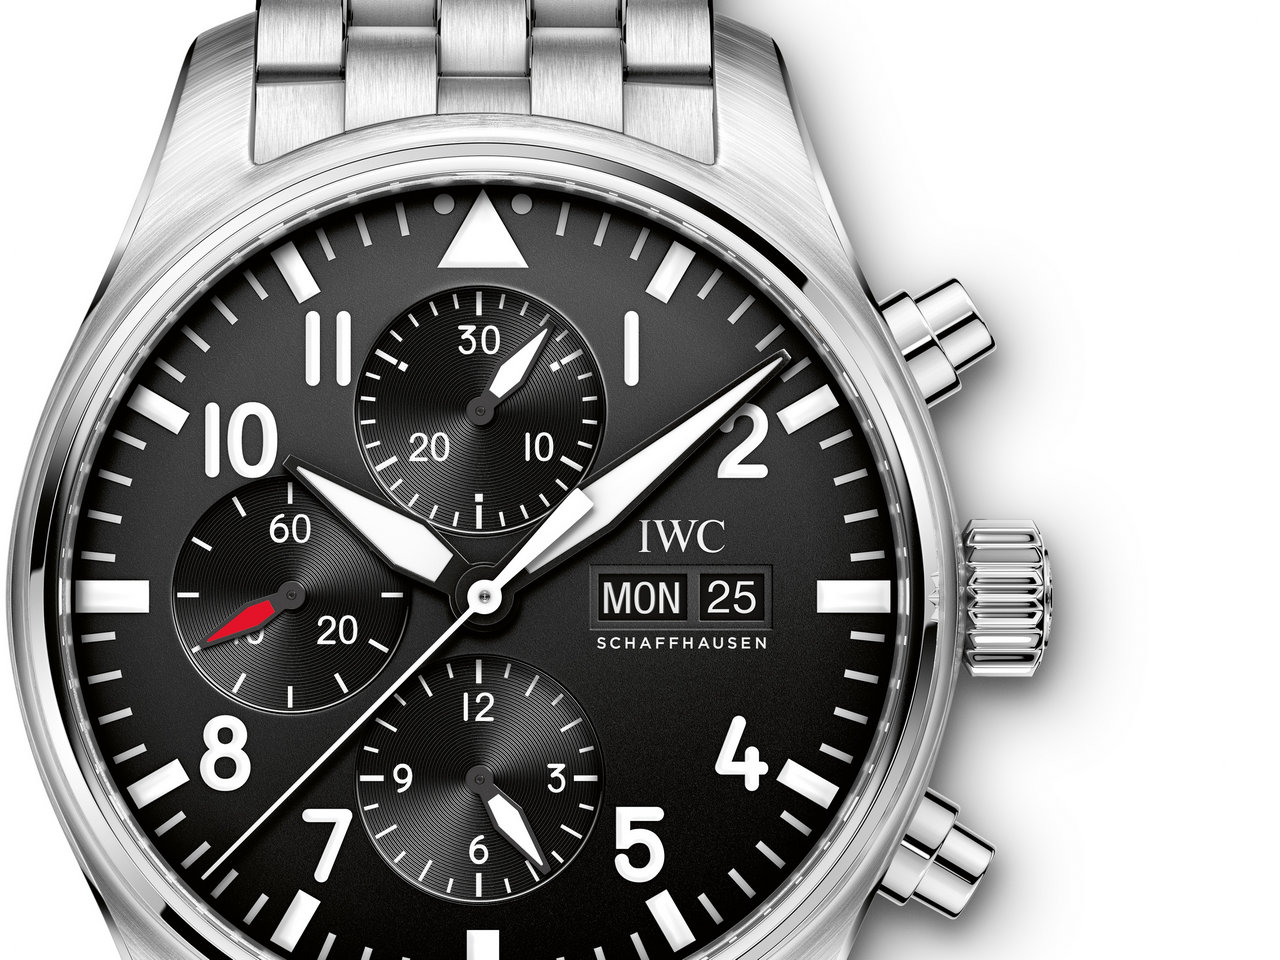 IWC-Pilot-Watch-Chronograph-ref-IW377709-IW377710-0-100_4